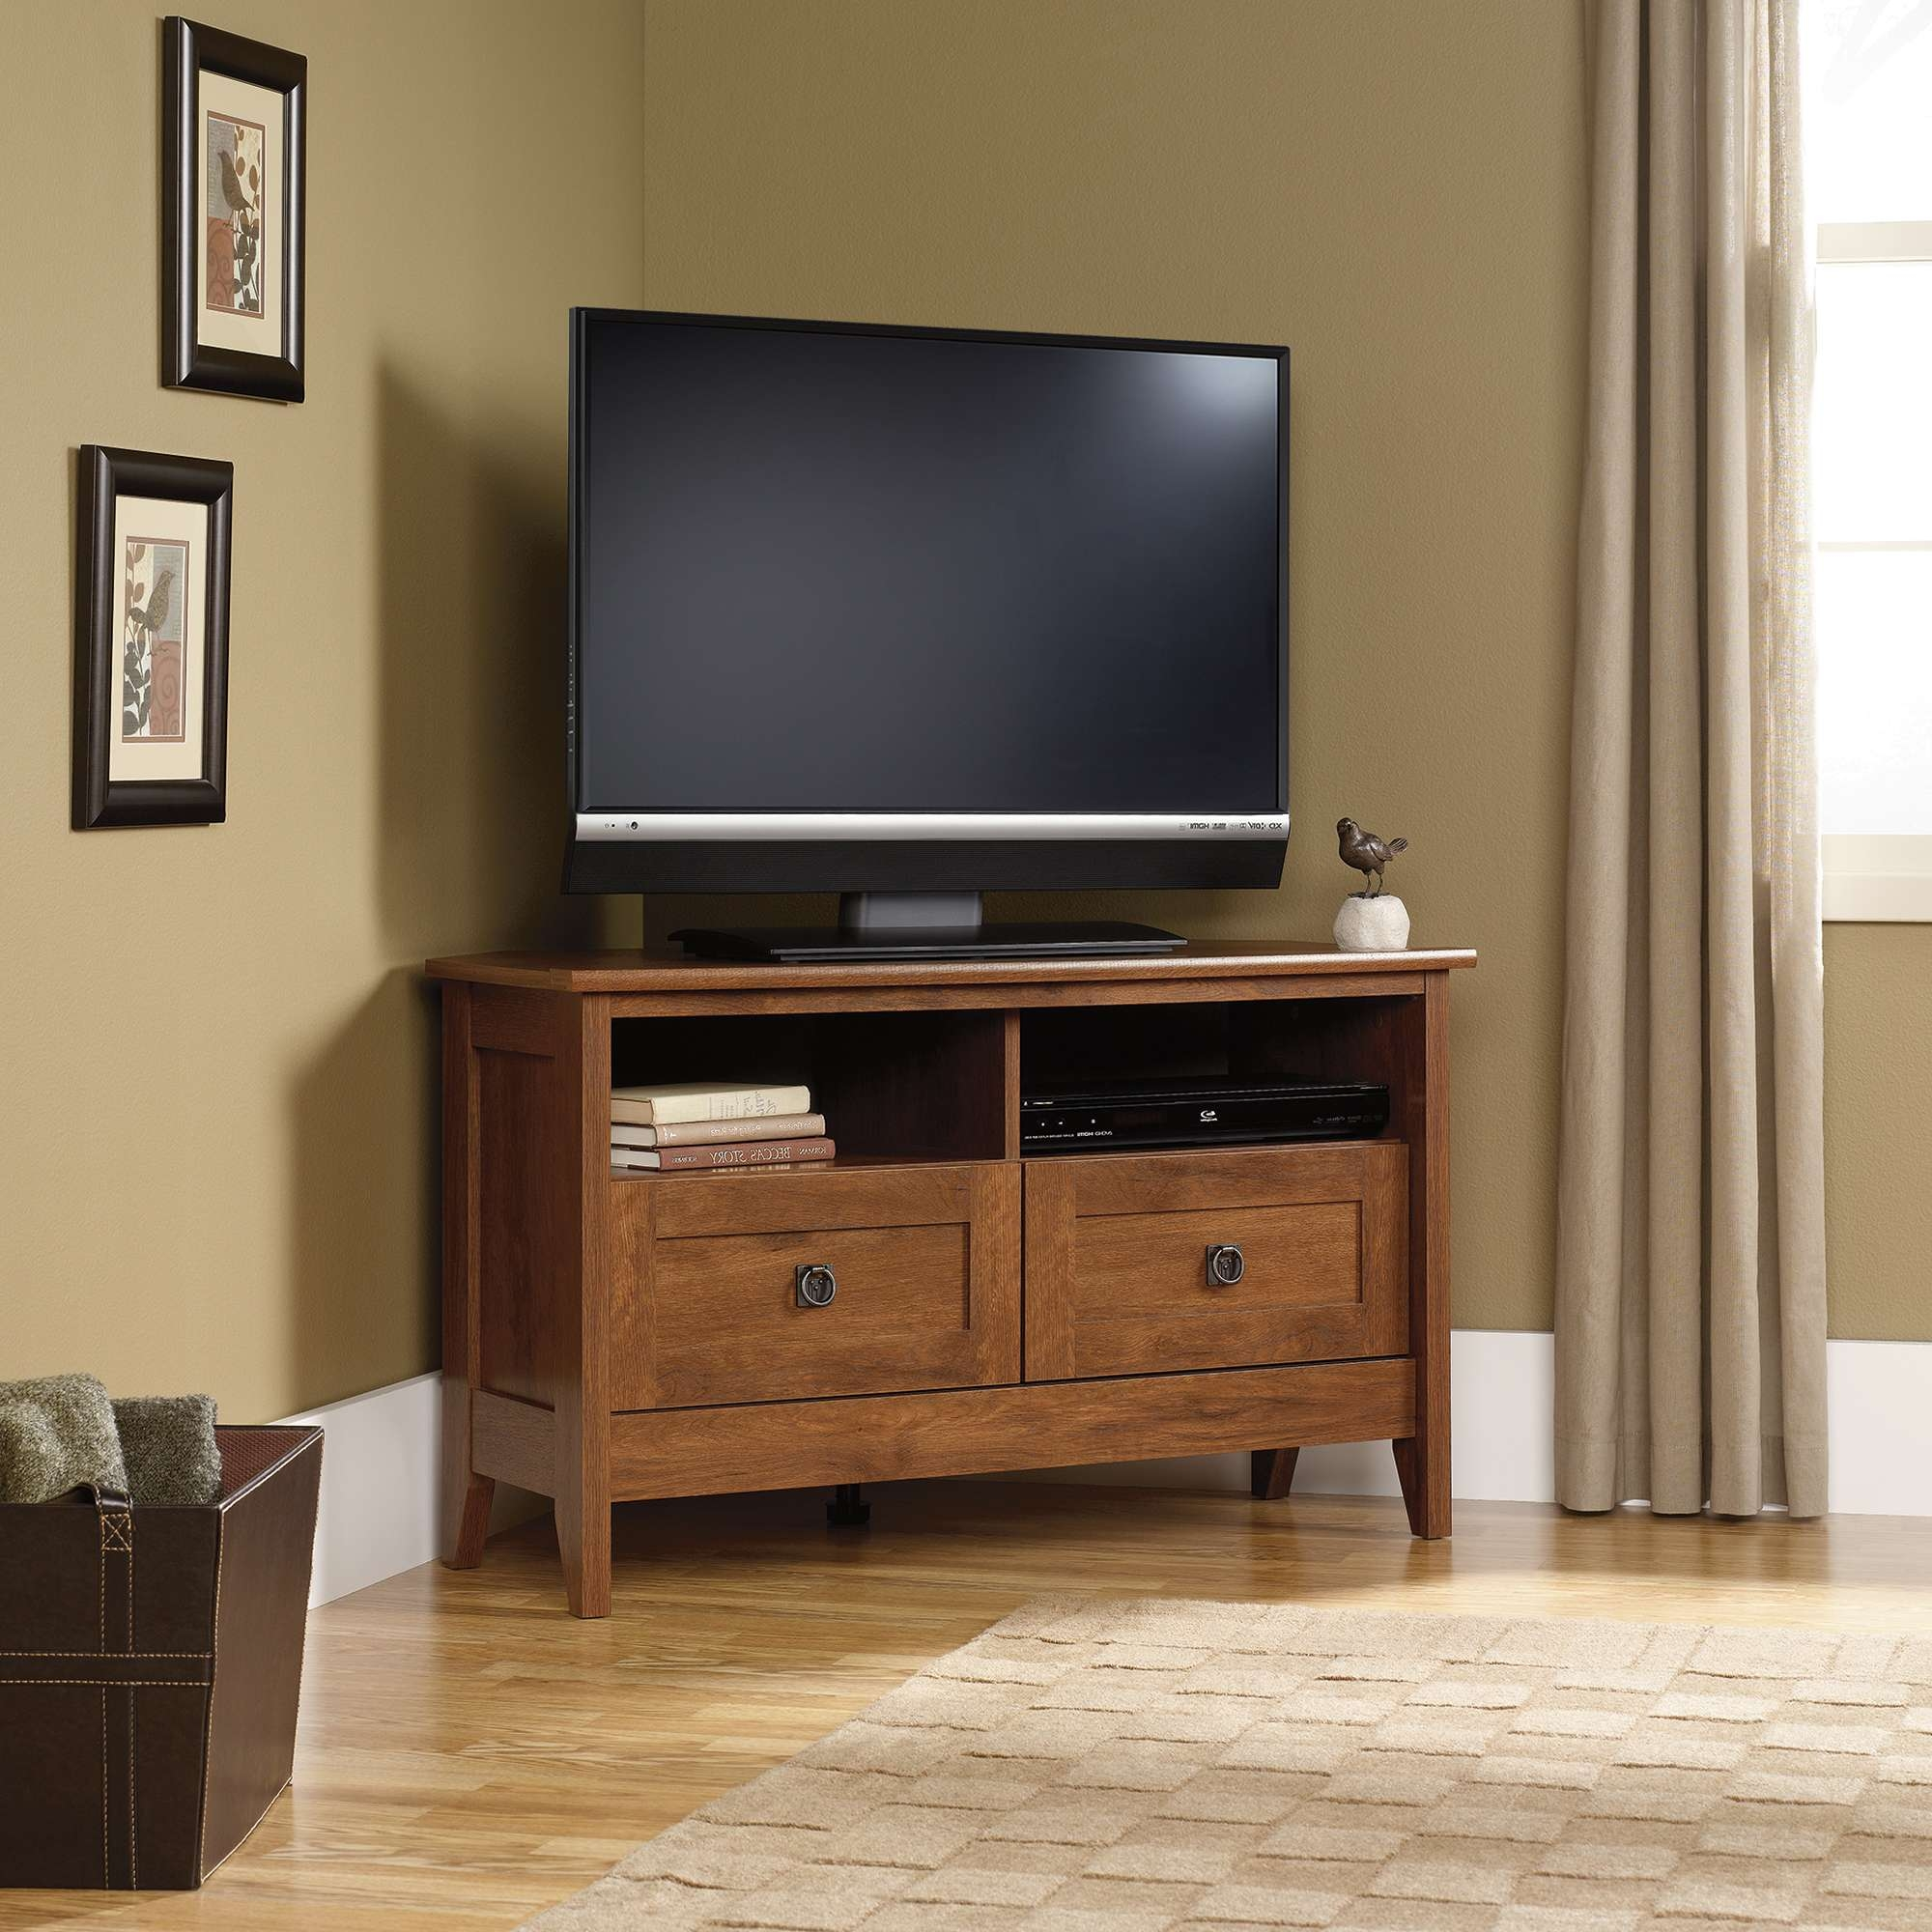 Sauder Select | Corner Tv Stand | 410627 | Sauder With Tv Stands For Corner (View 13 of 15)